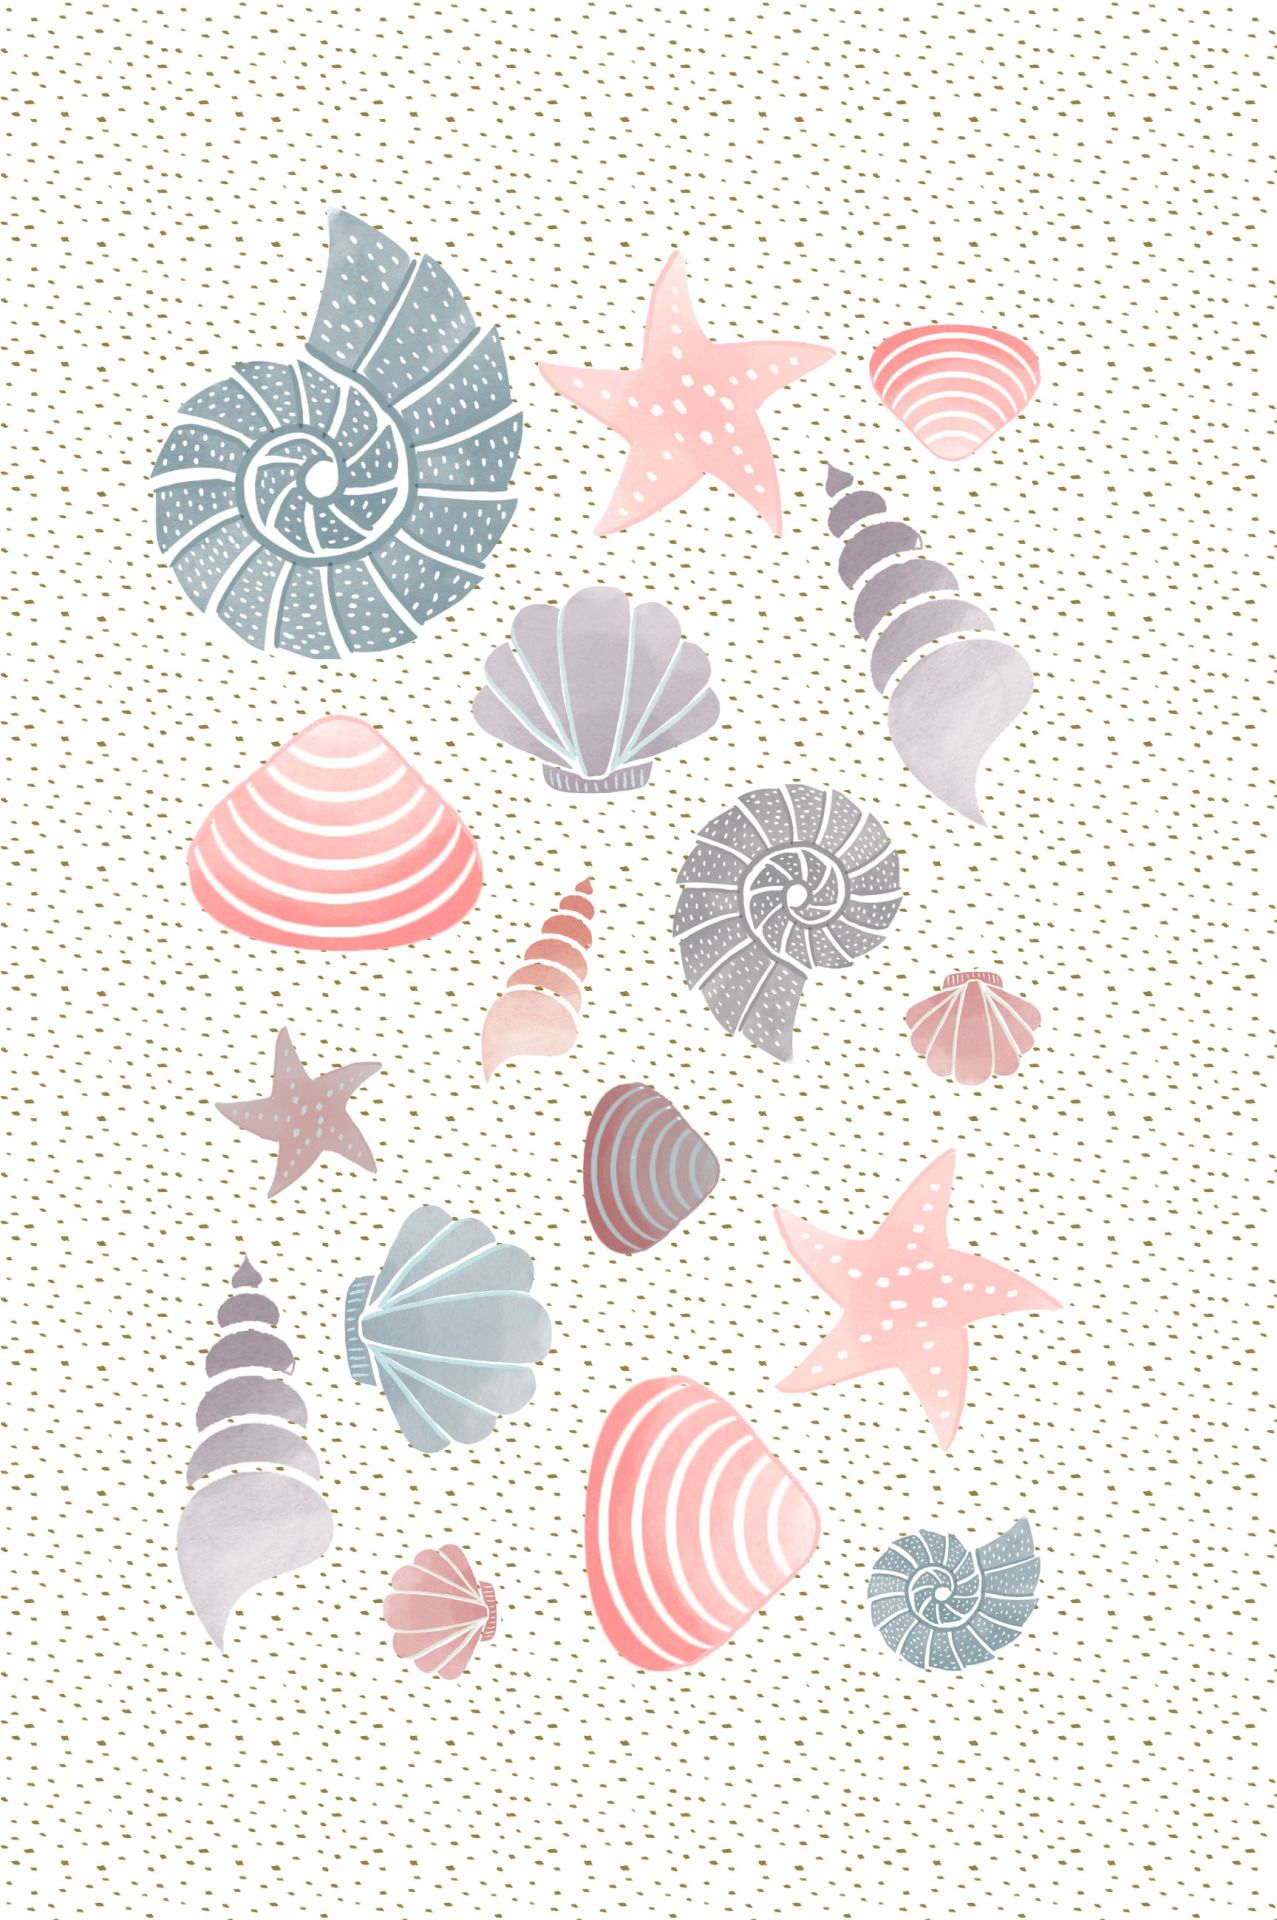 Mermaid iphone wallpaper tumblr - Mariebretin Coquillages Par Marie Bretin Pretty Iphone Wallpapersiphone